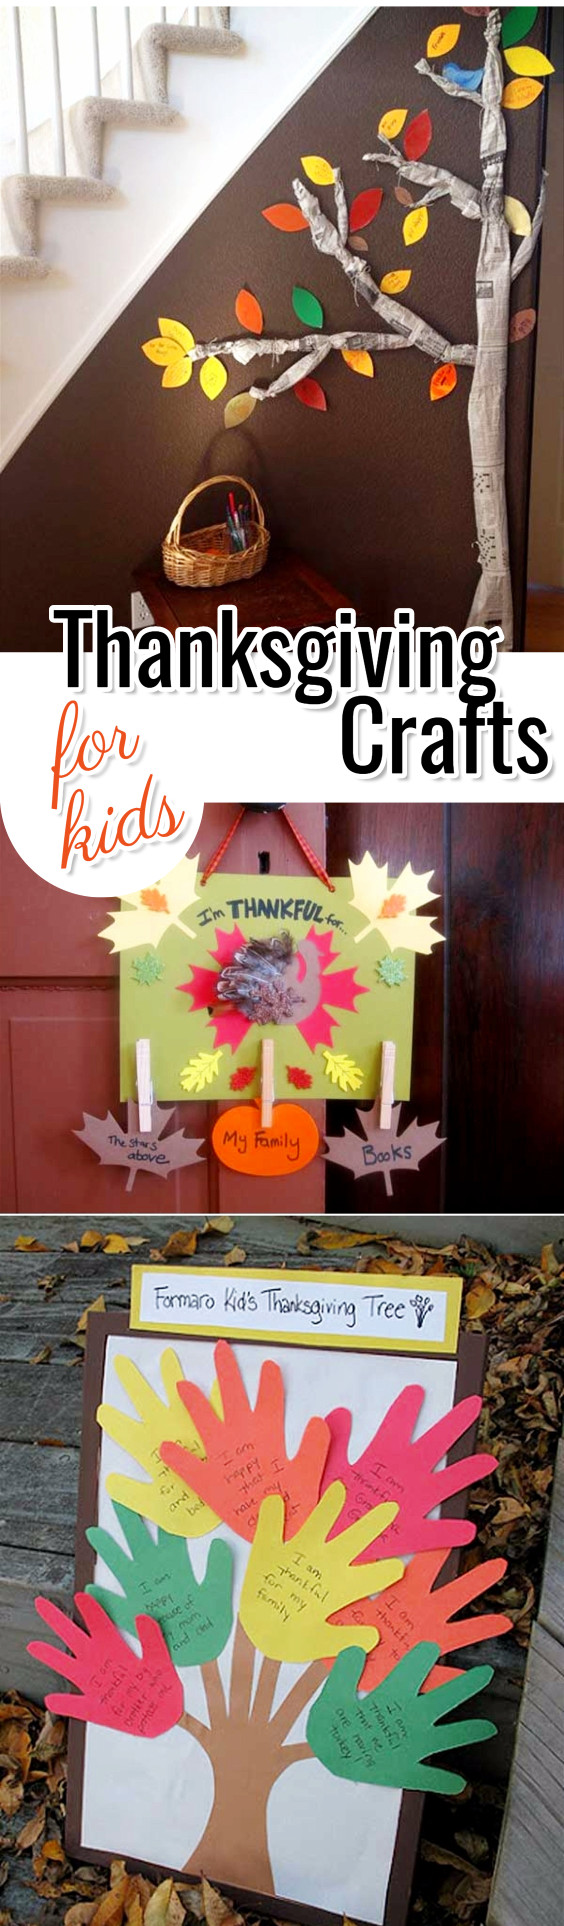 Thanksgiving Crafts for Kids - Fun and Easy Kids Craft Ideas for Thanksgiving #craftsforkids #thanksgivingcrafts #preschoolcrafts #toddlercrafts #toddleractivities